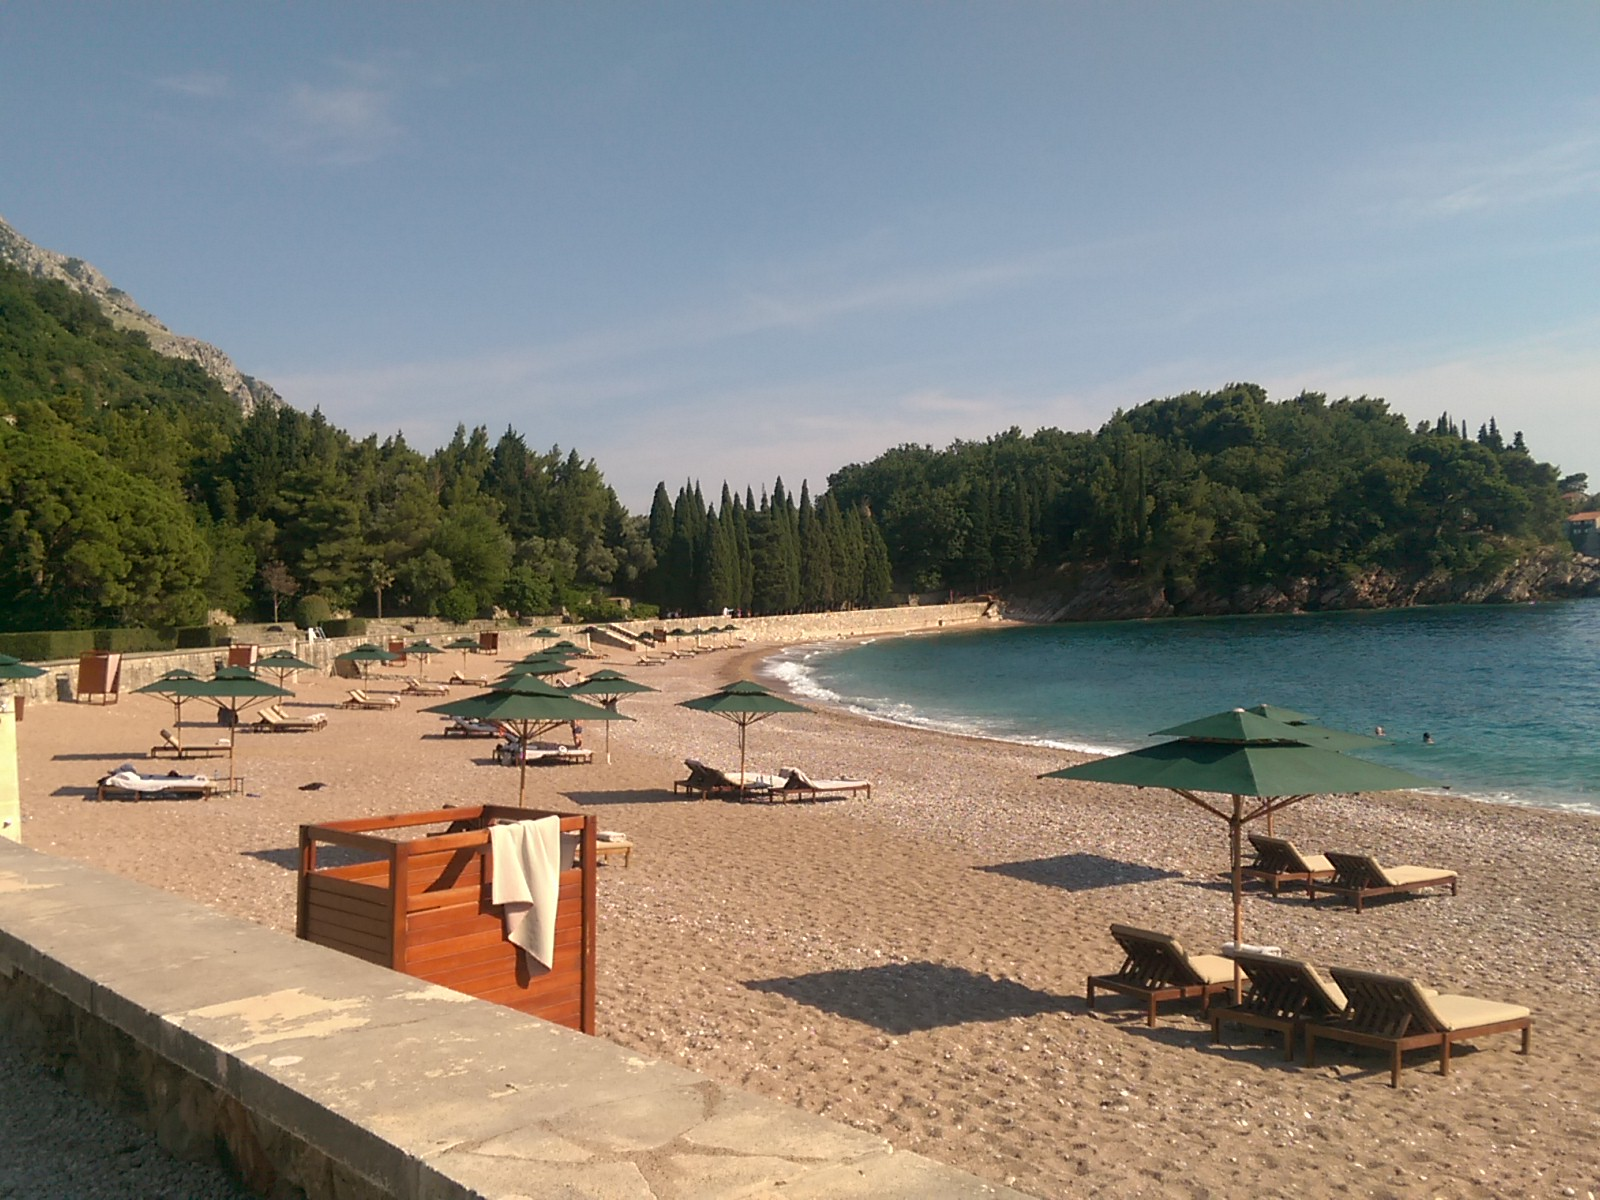 A clear sand beach curves to the left with empty sunbeds and blue sea, lined with trees